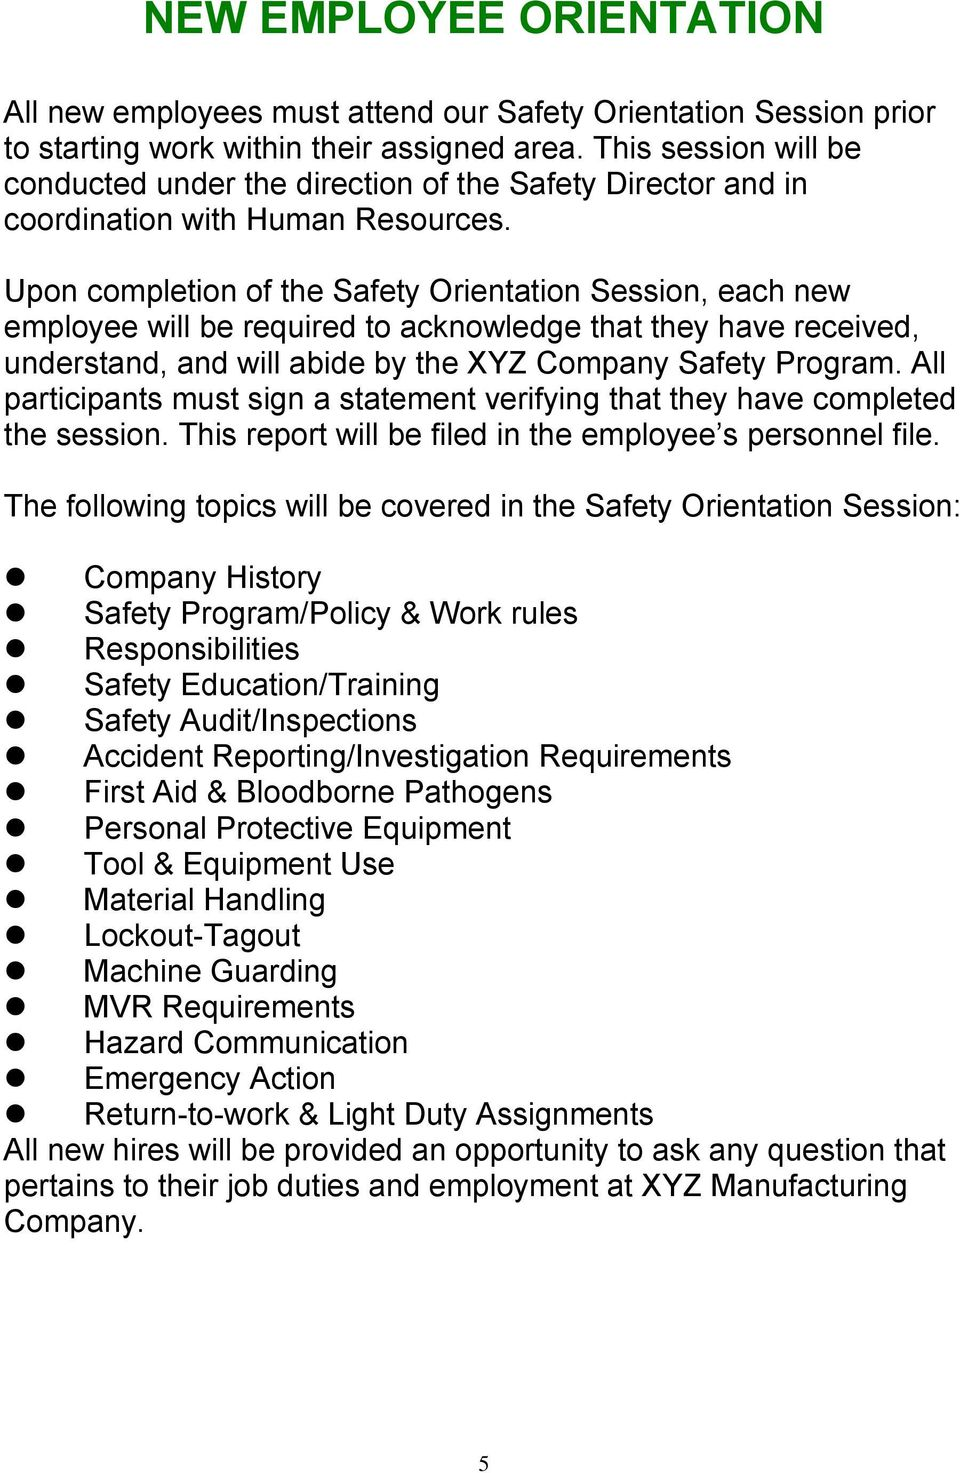 Upon completion of the Safety Orientation Session, each new employee will be required to acknowledge that they have received, understand, and will abide by the XYZ Company Safety Program.